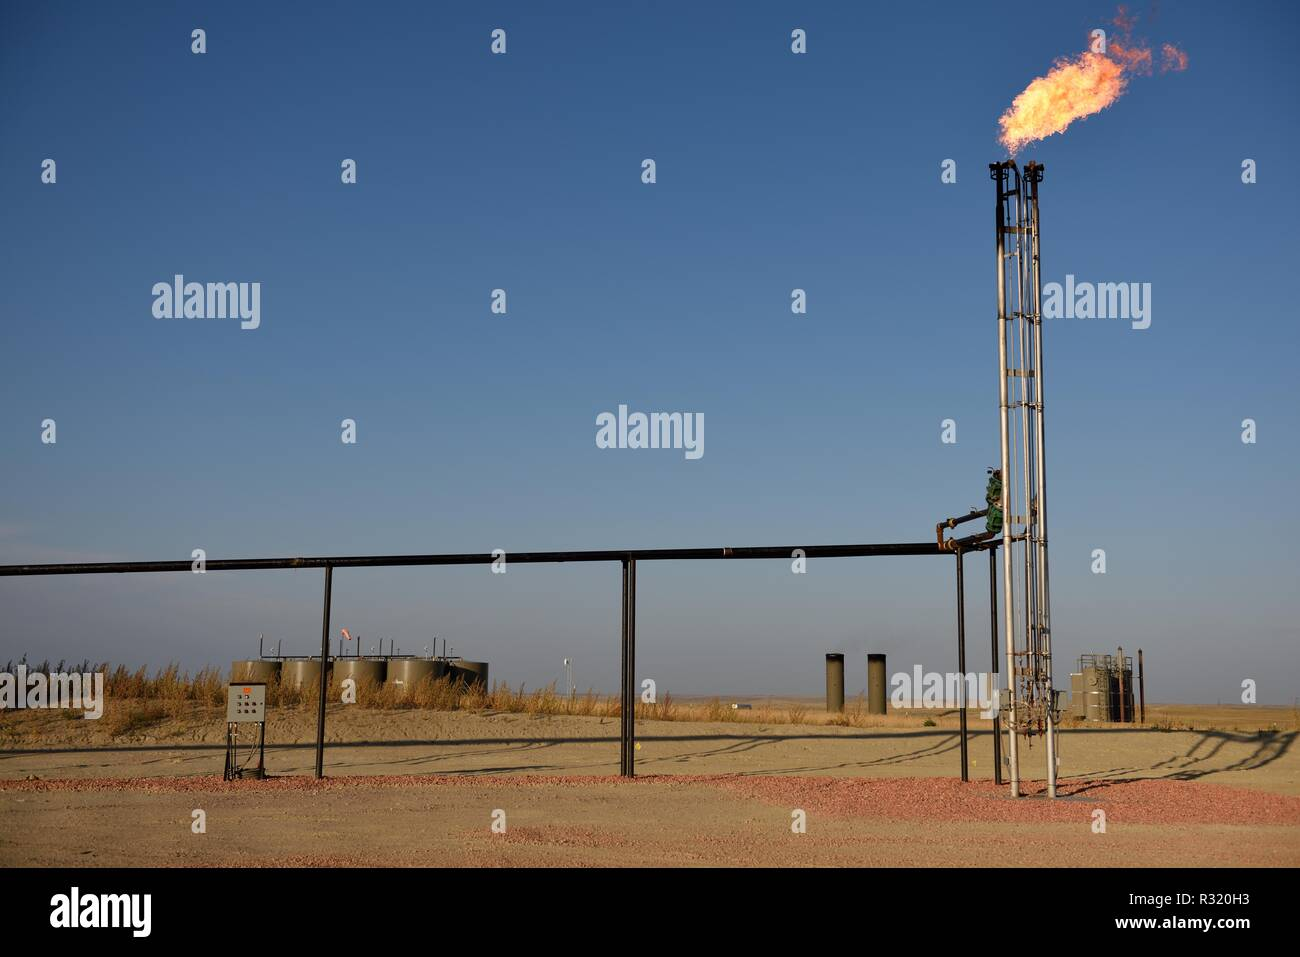 Natural gas flaring, venting, crude oil production drilling site, Wyoming, clear sky, Powder River Basin, Wyoming, copy space - Stock Image